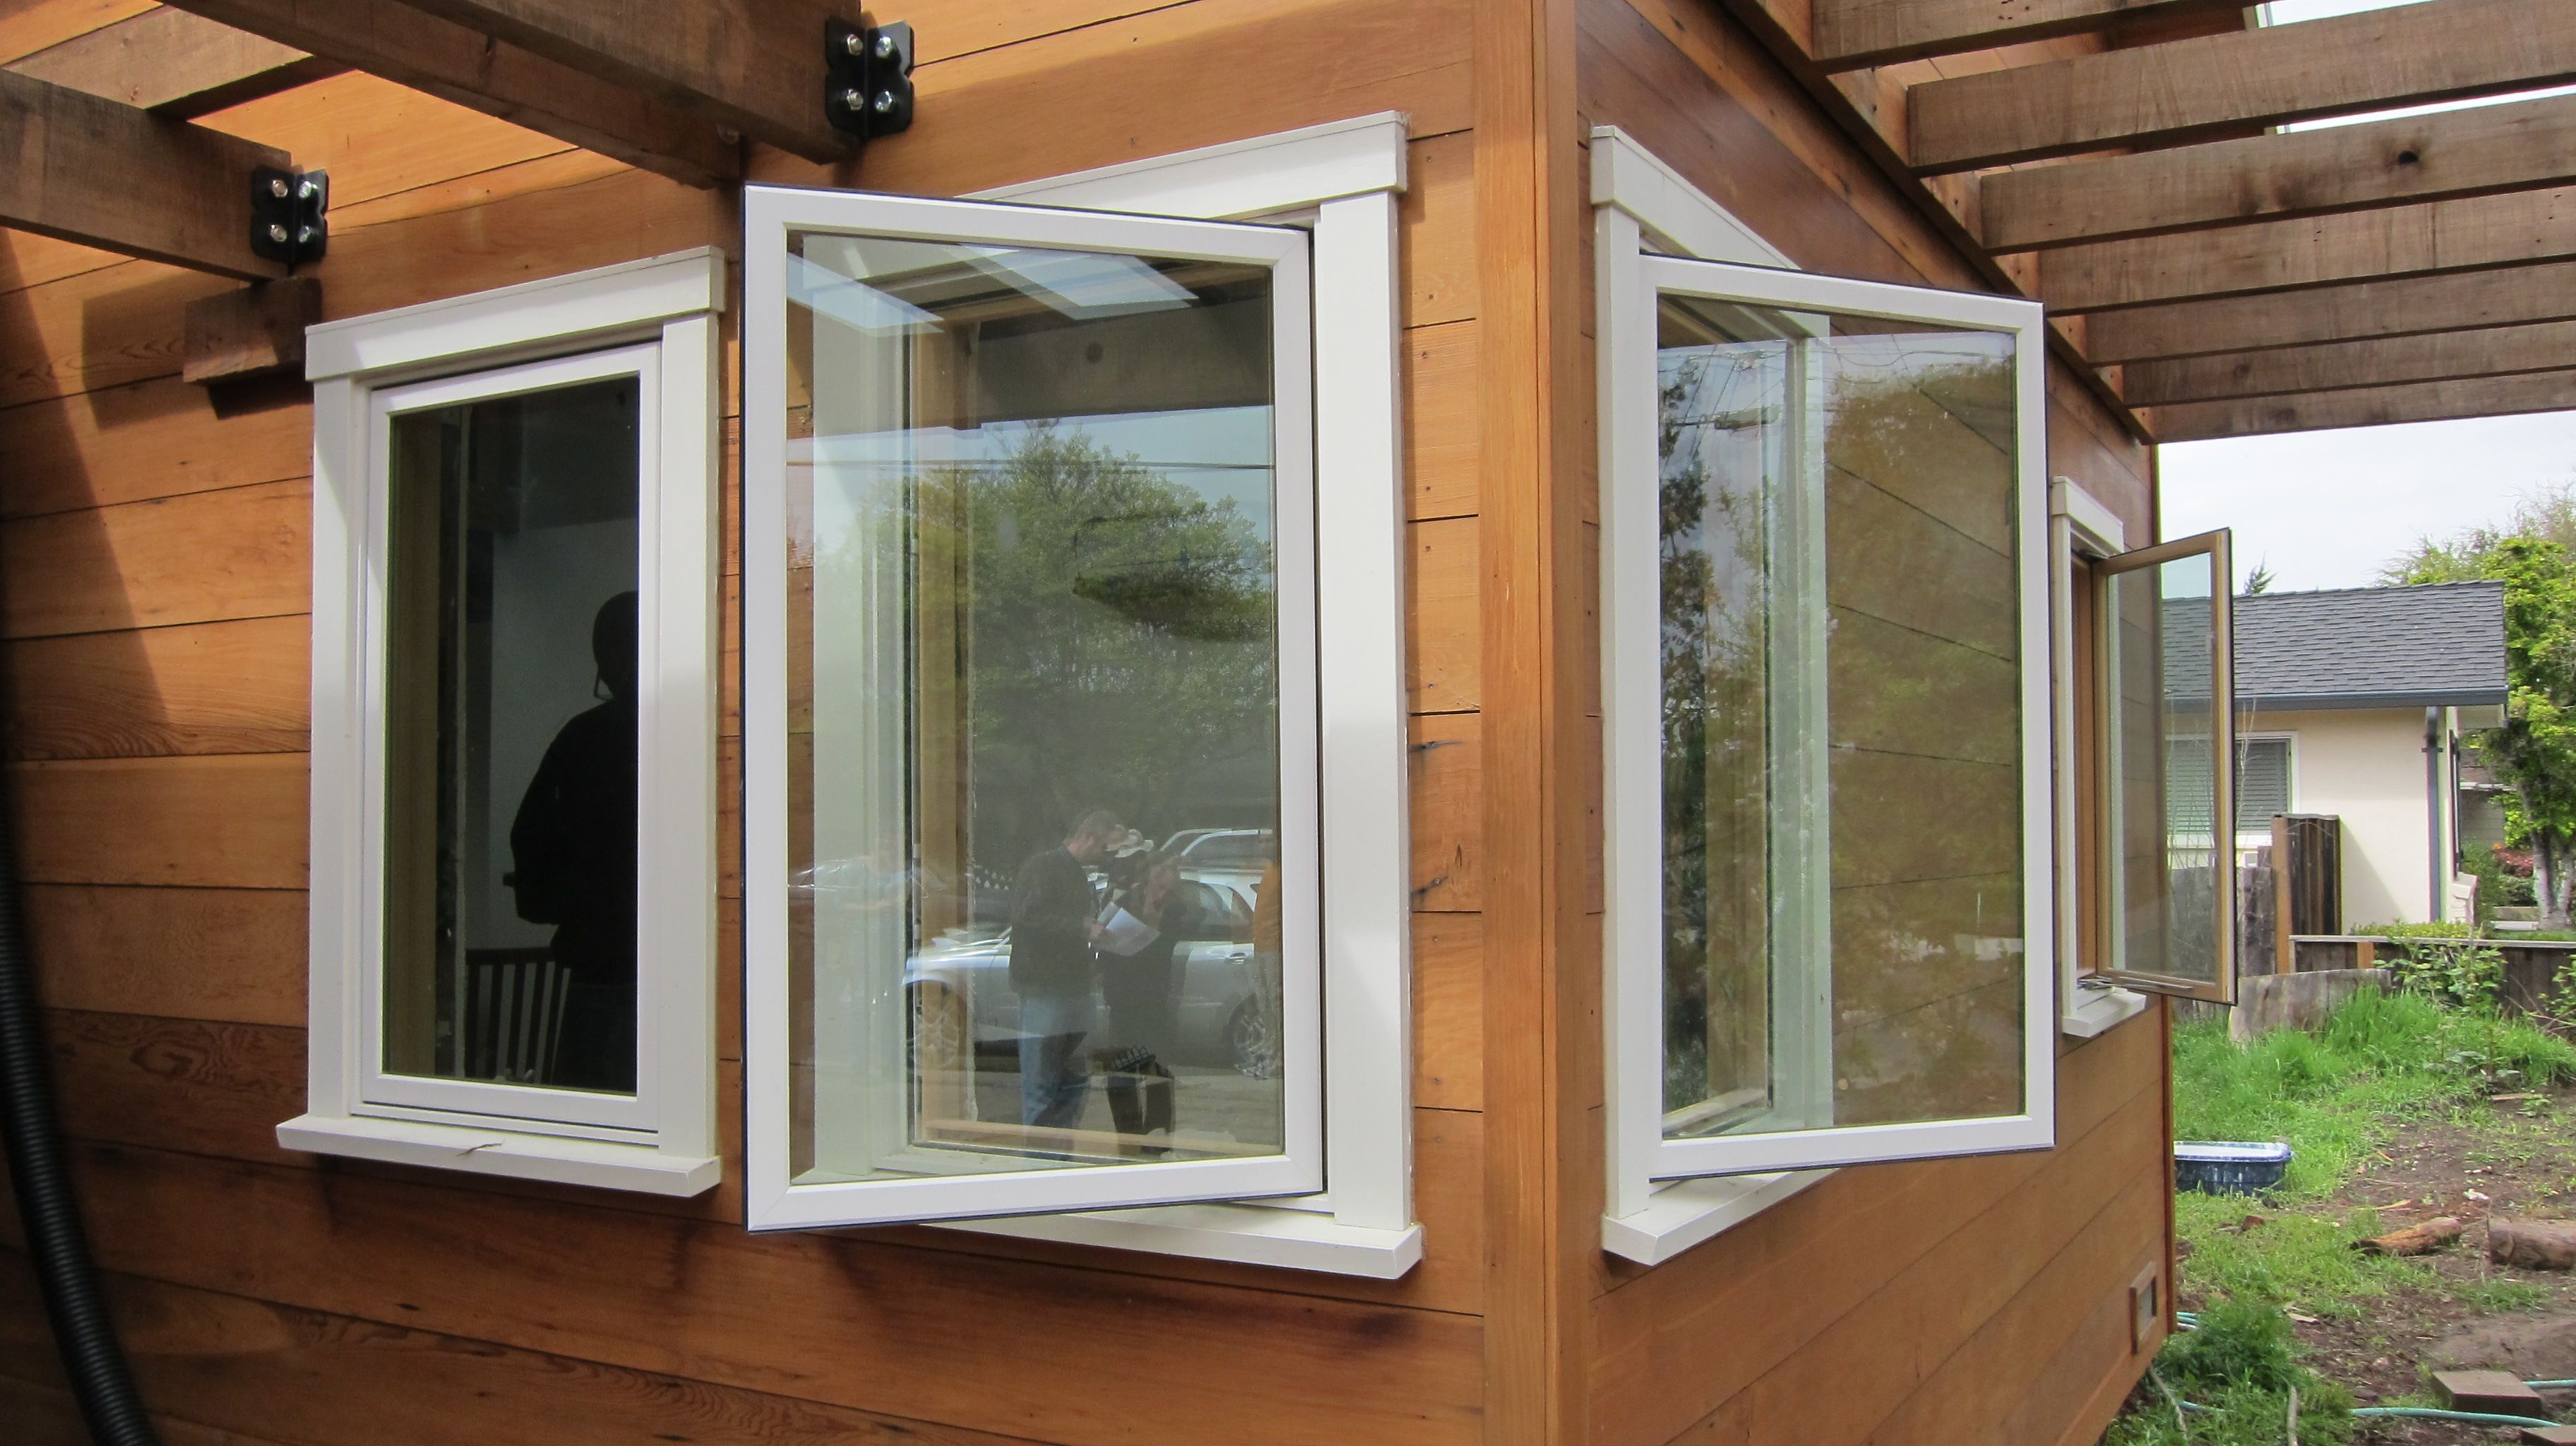 Windows house open - Casement Windows Are Hinged Either Left Or Right And Crank Open To